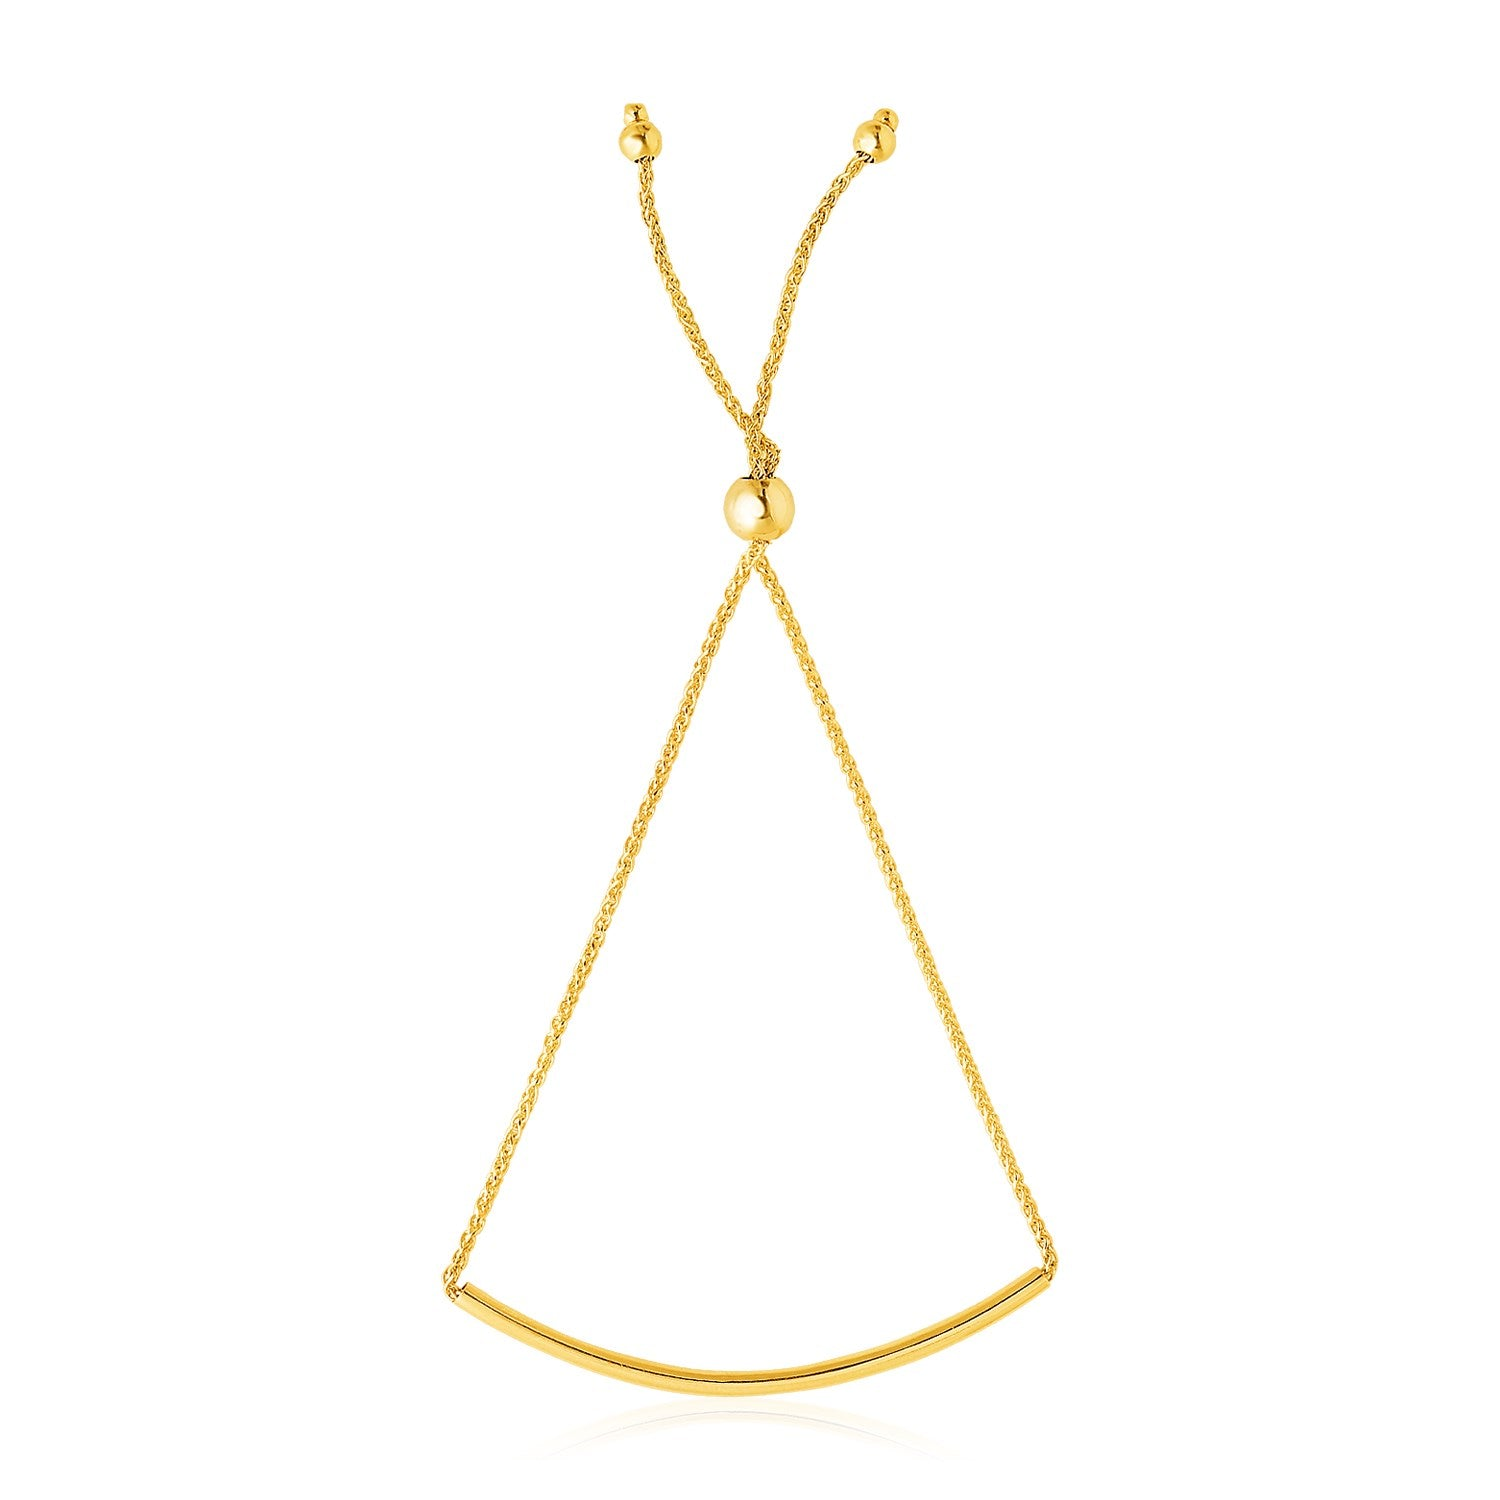 14K Yellow Gold Smooth Curved Bar Lariat Design Bracelet